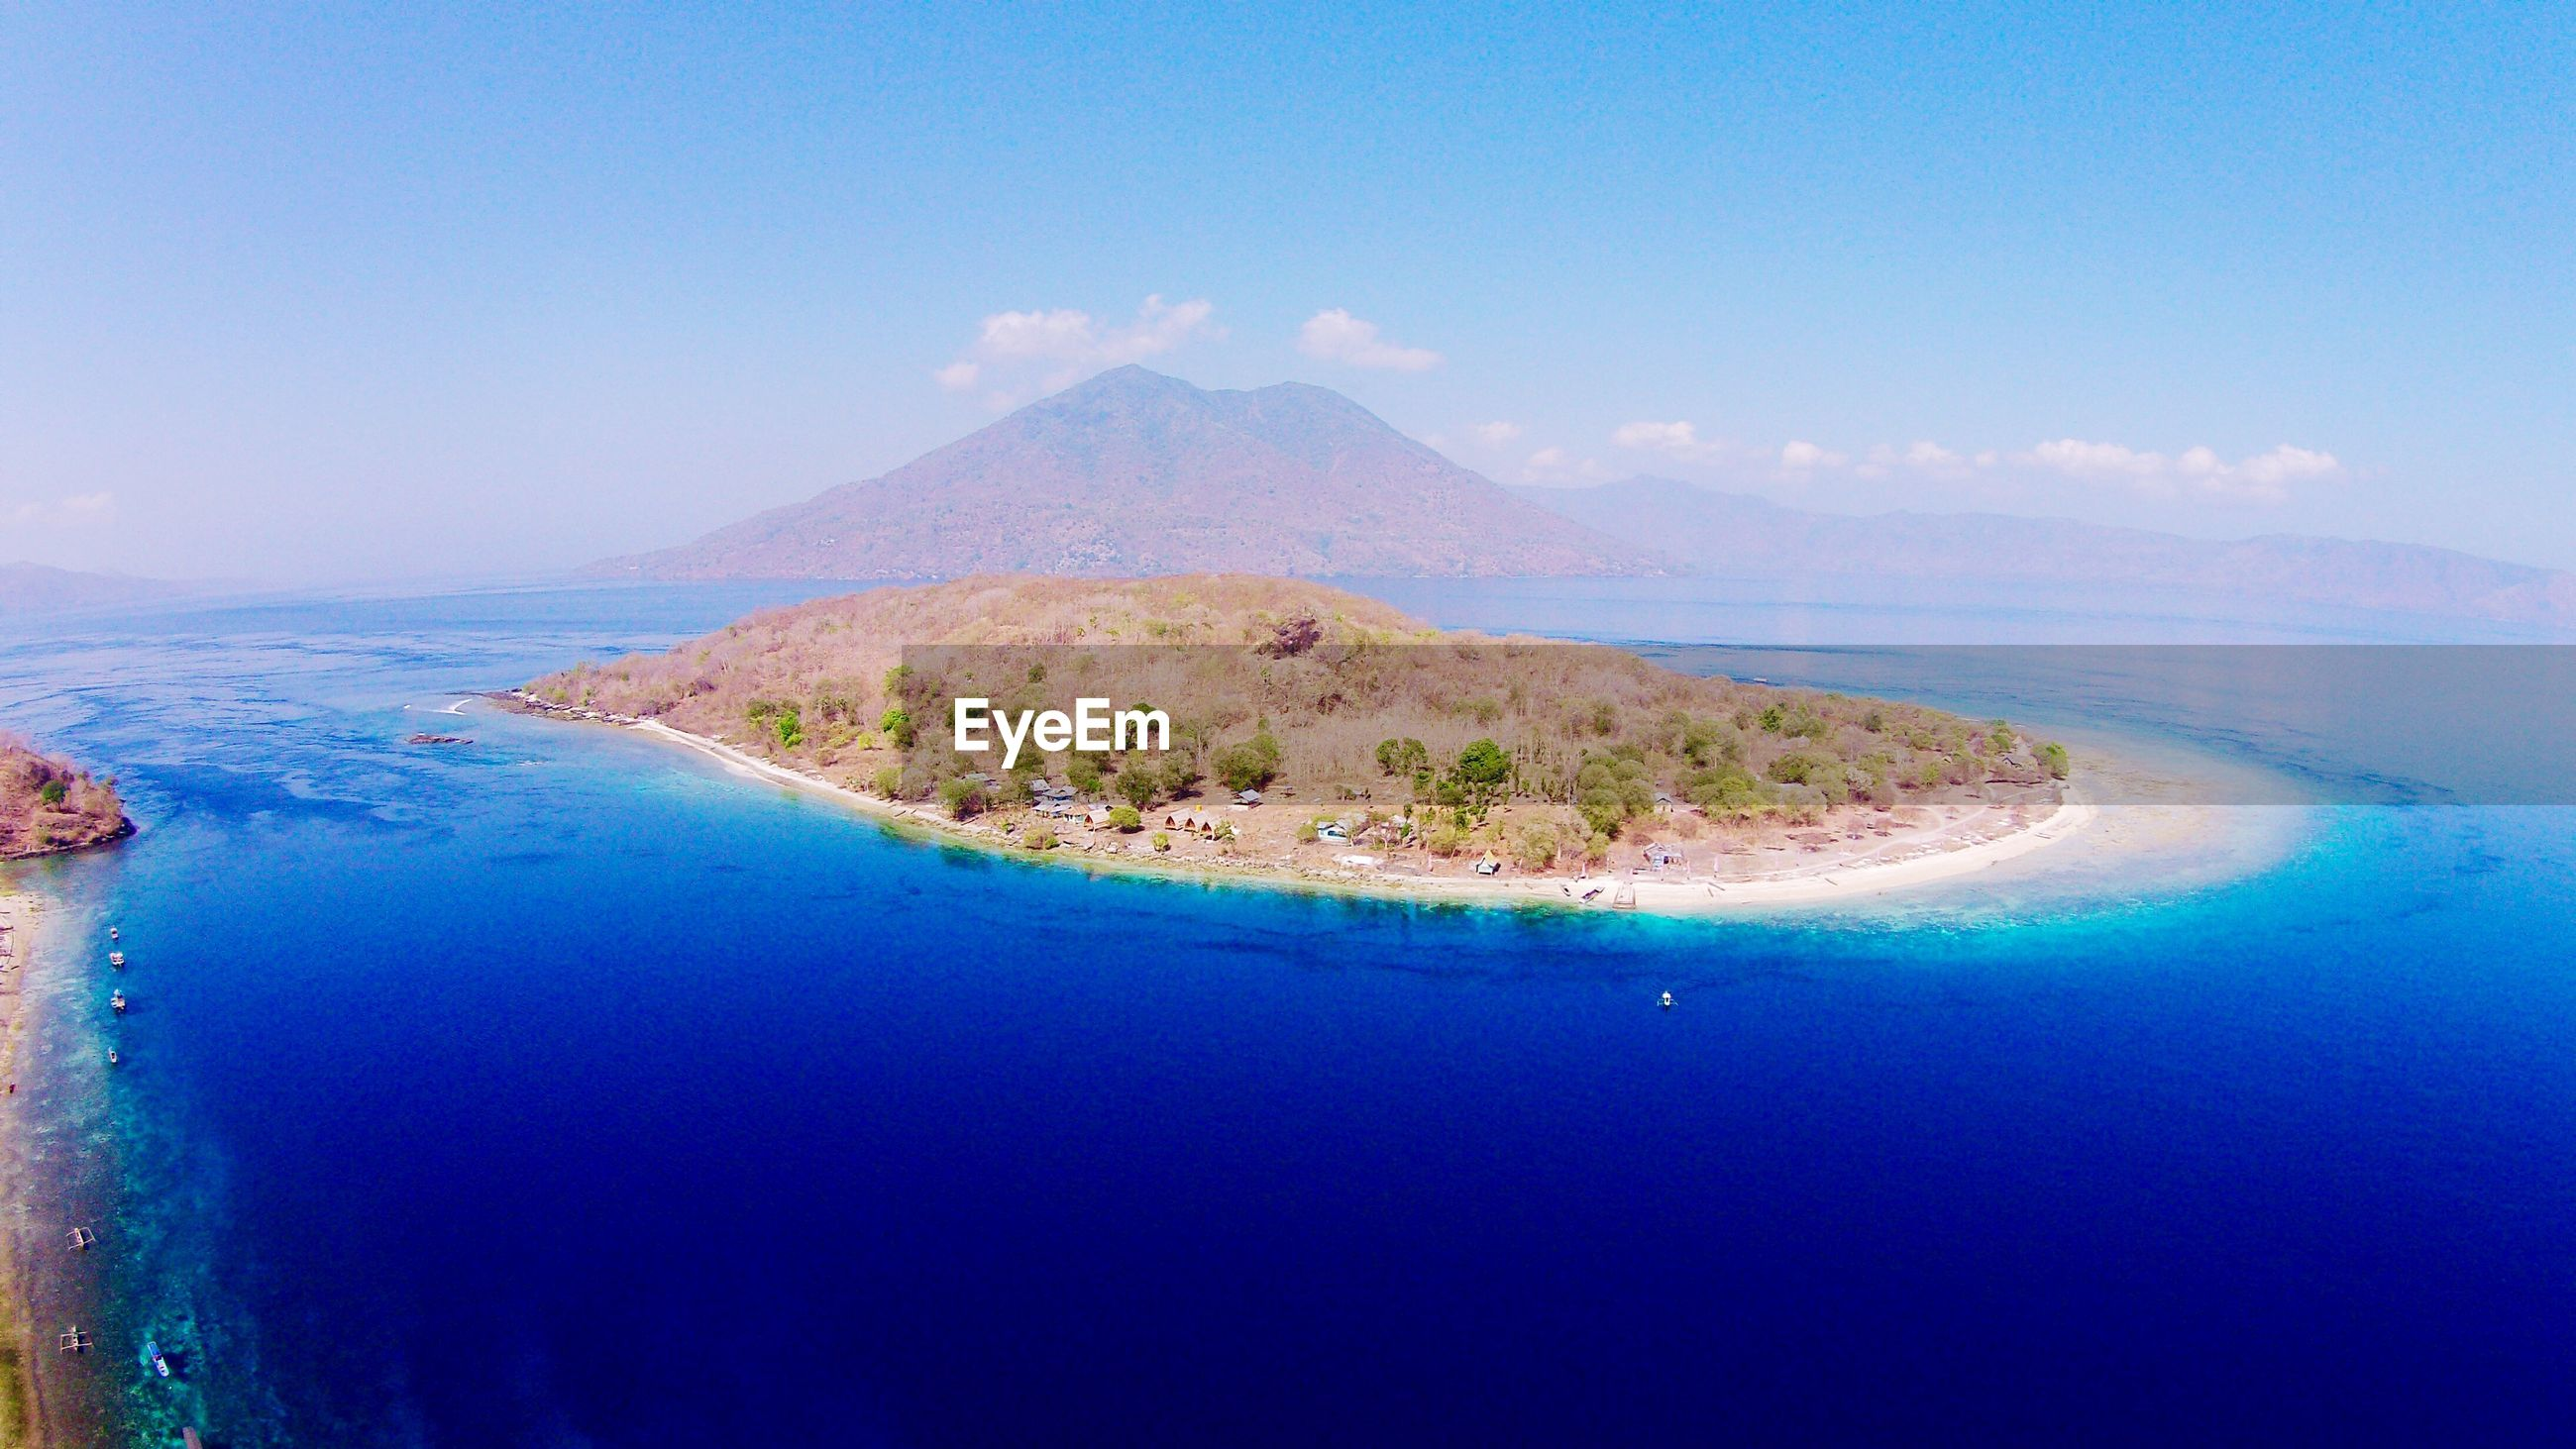 Scenic view of island against sky